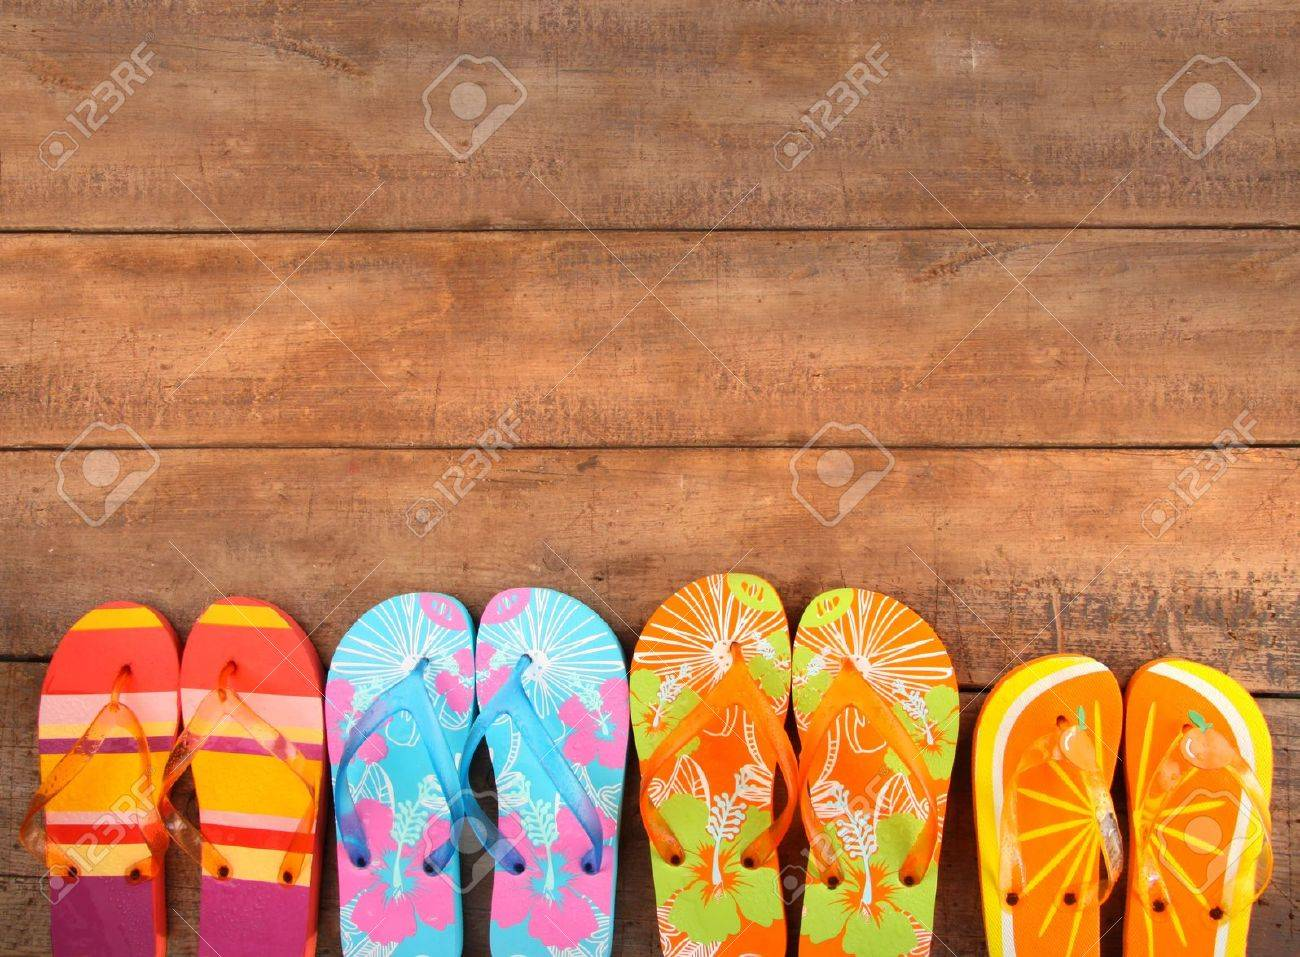 Brightly colored flip-flops on wood deck Stock Photo - 7227071